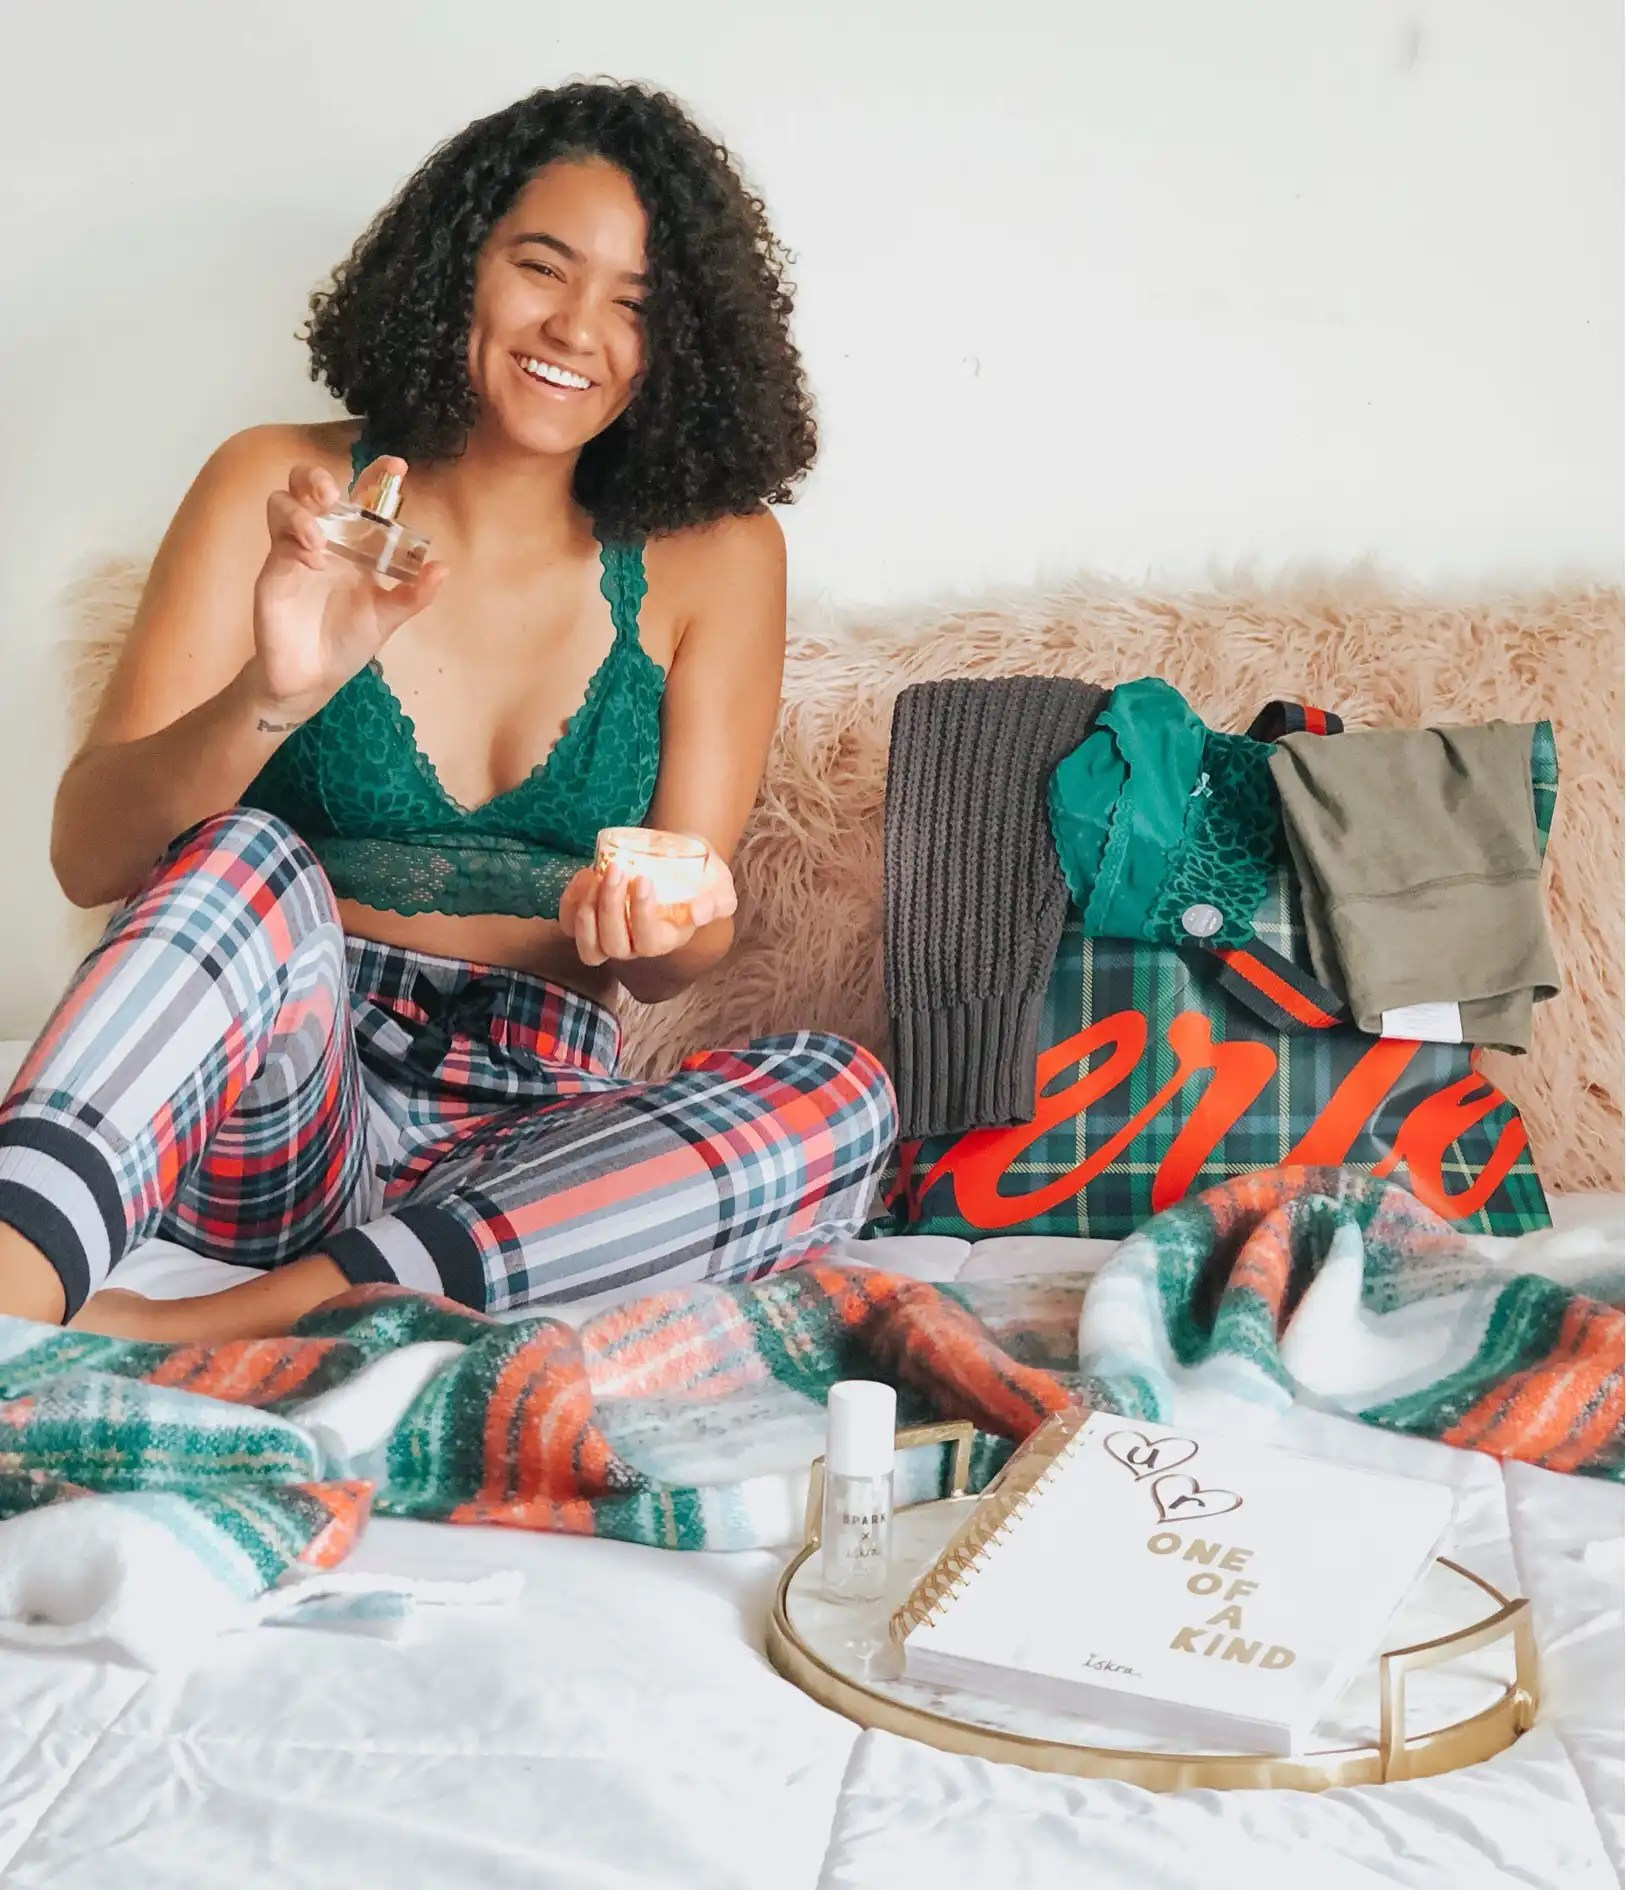 gifts-and-green-bralette-aerie-holiday-gift-guide